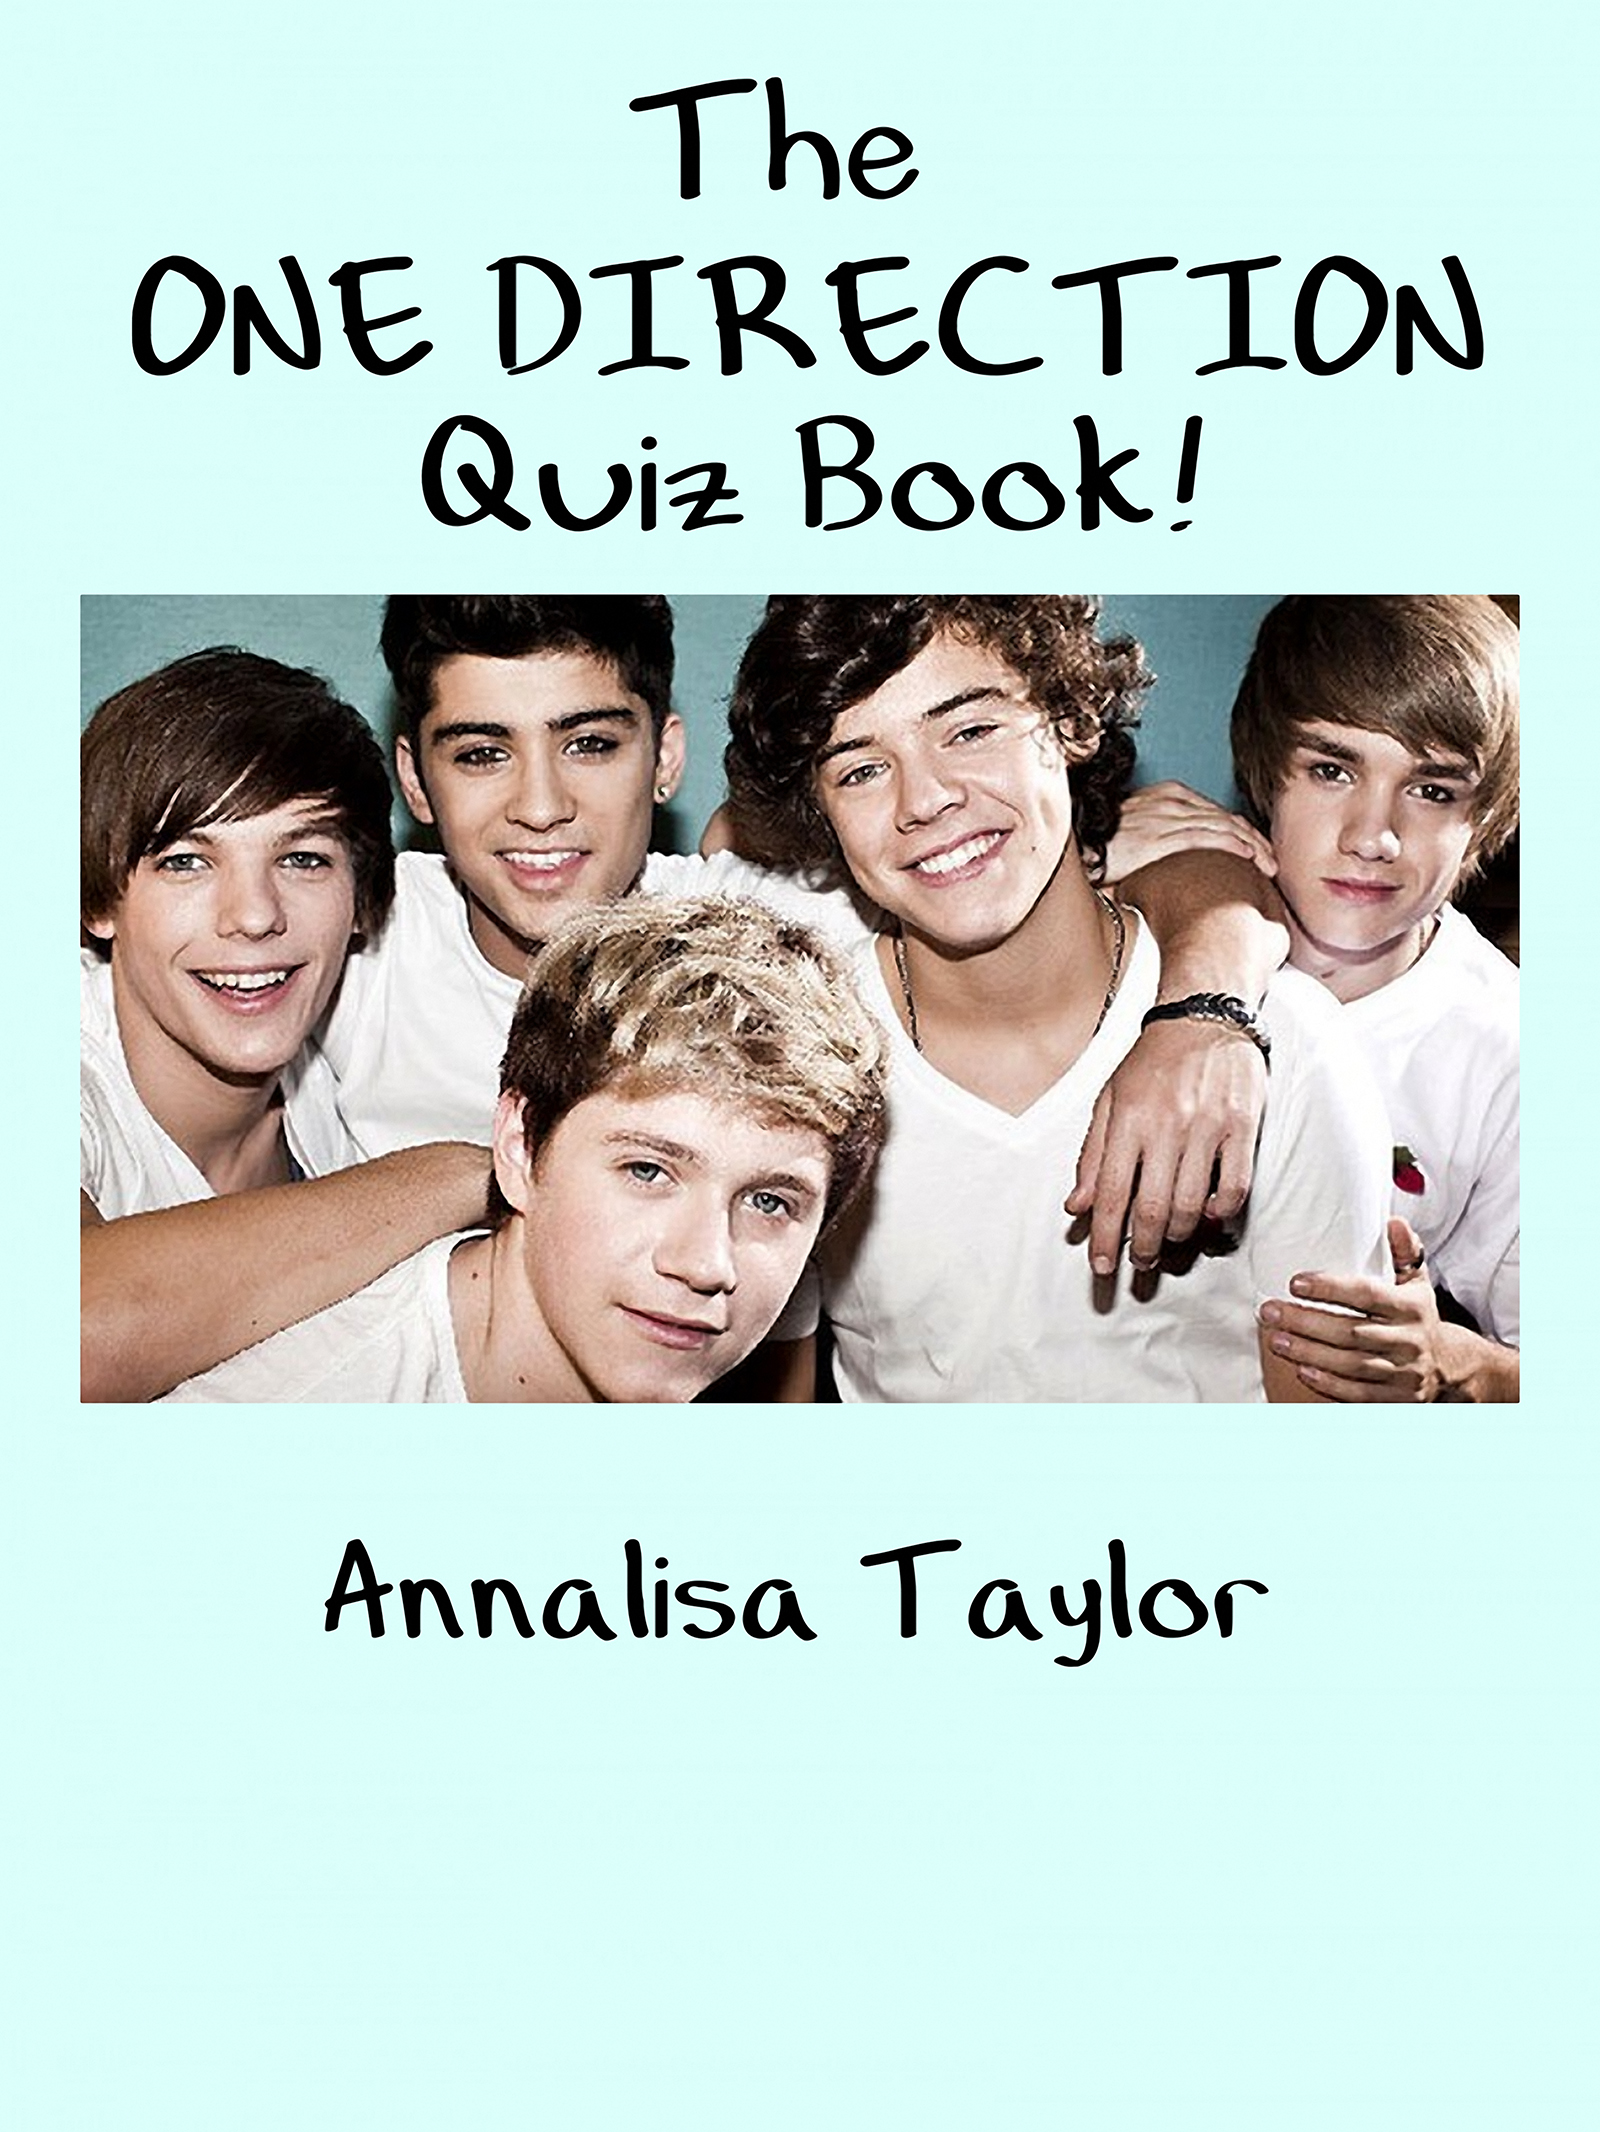 The One Direction Quiz Book!